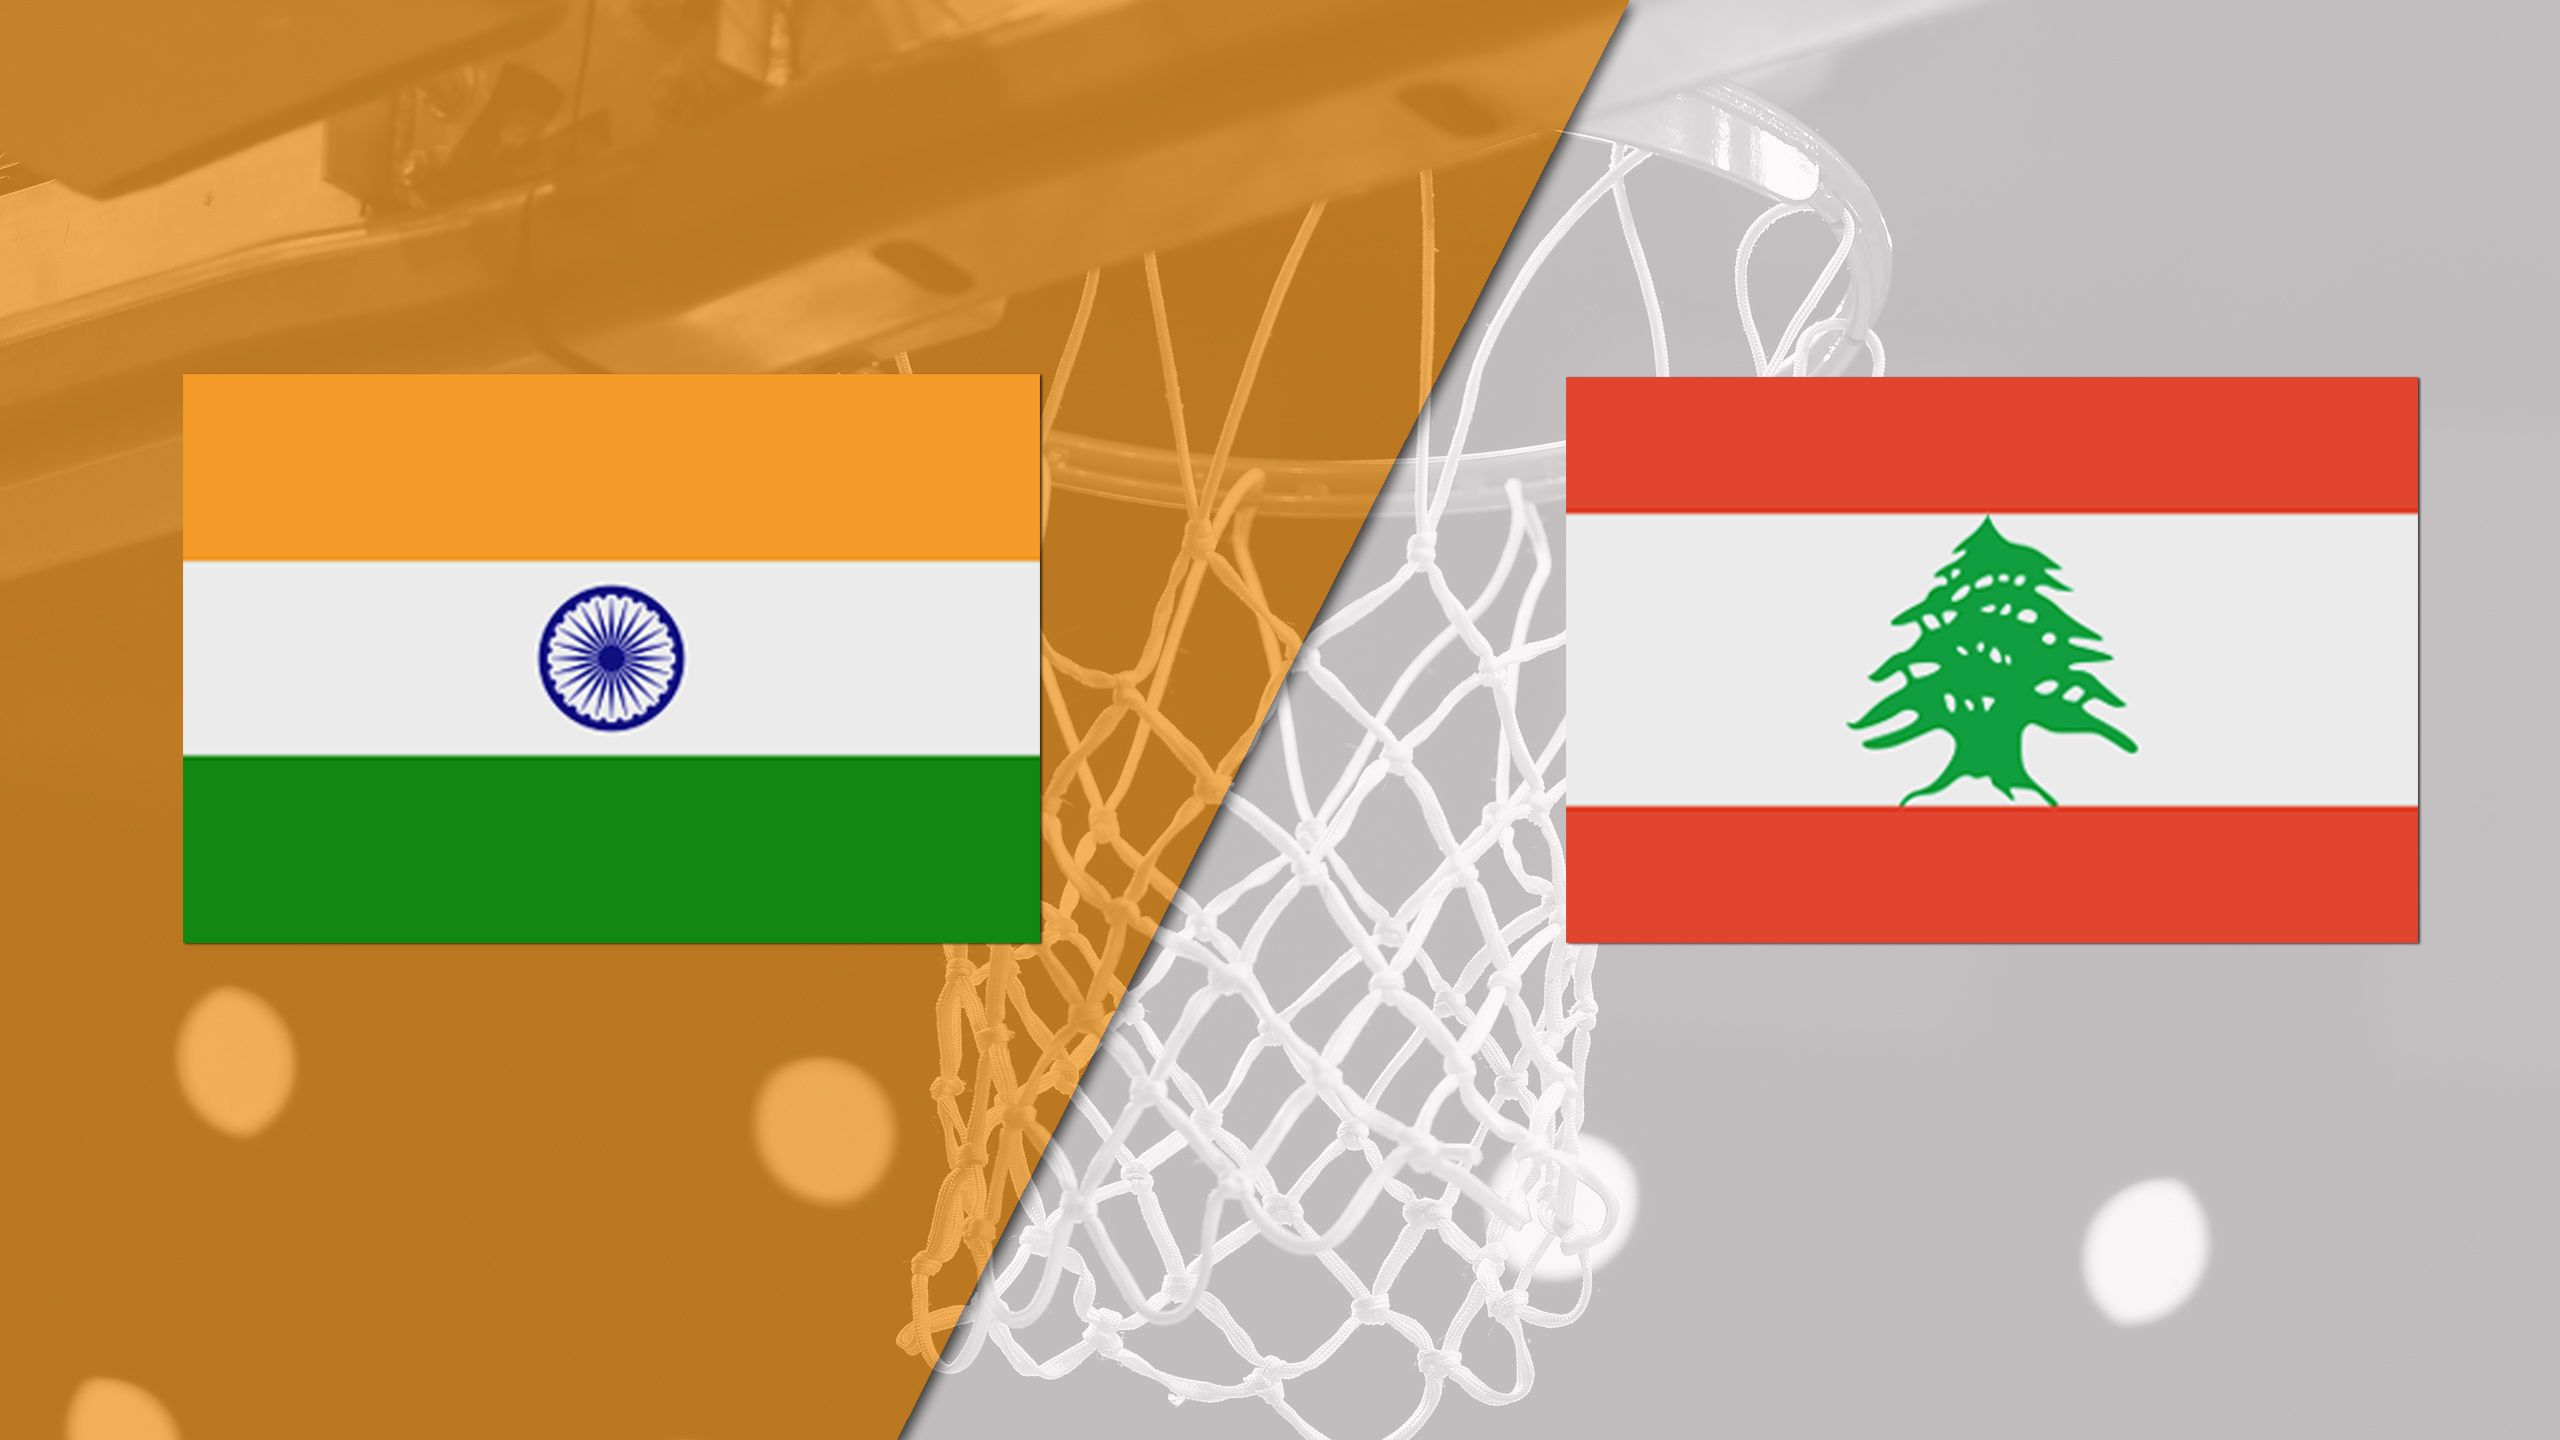 India vs. Lebanon (FIBA World Cup 2019 Qualifier)